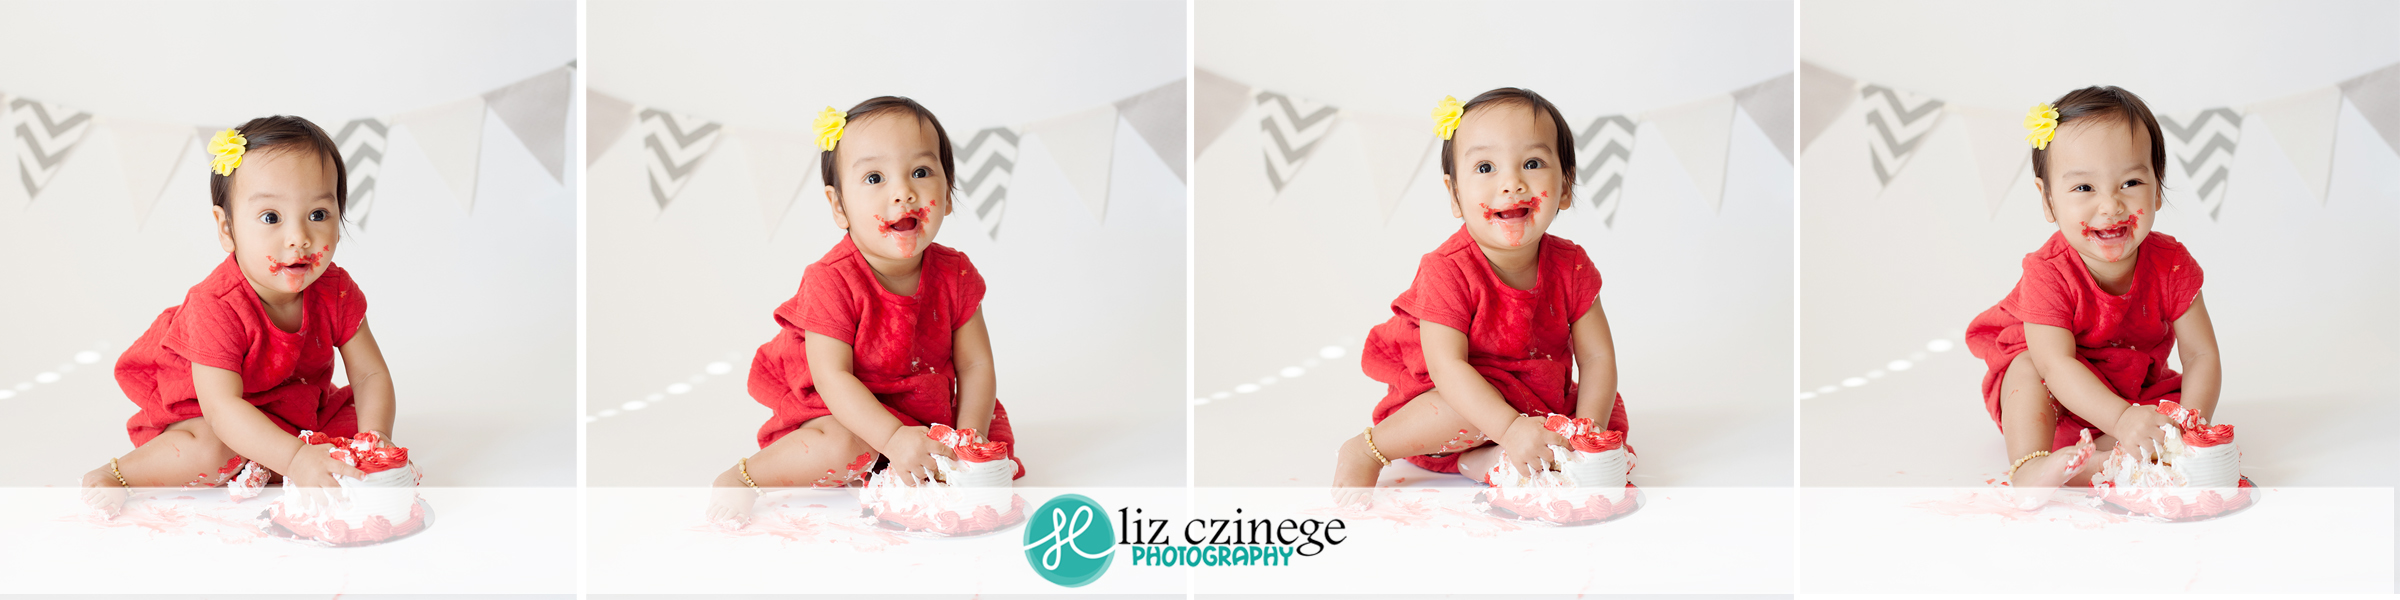 liz_czinege_photography_child_newborn11